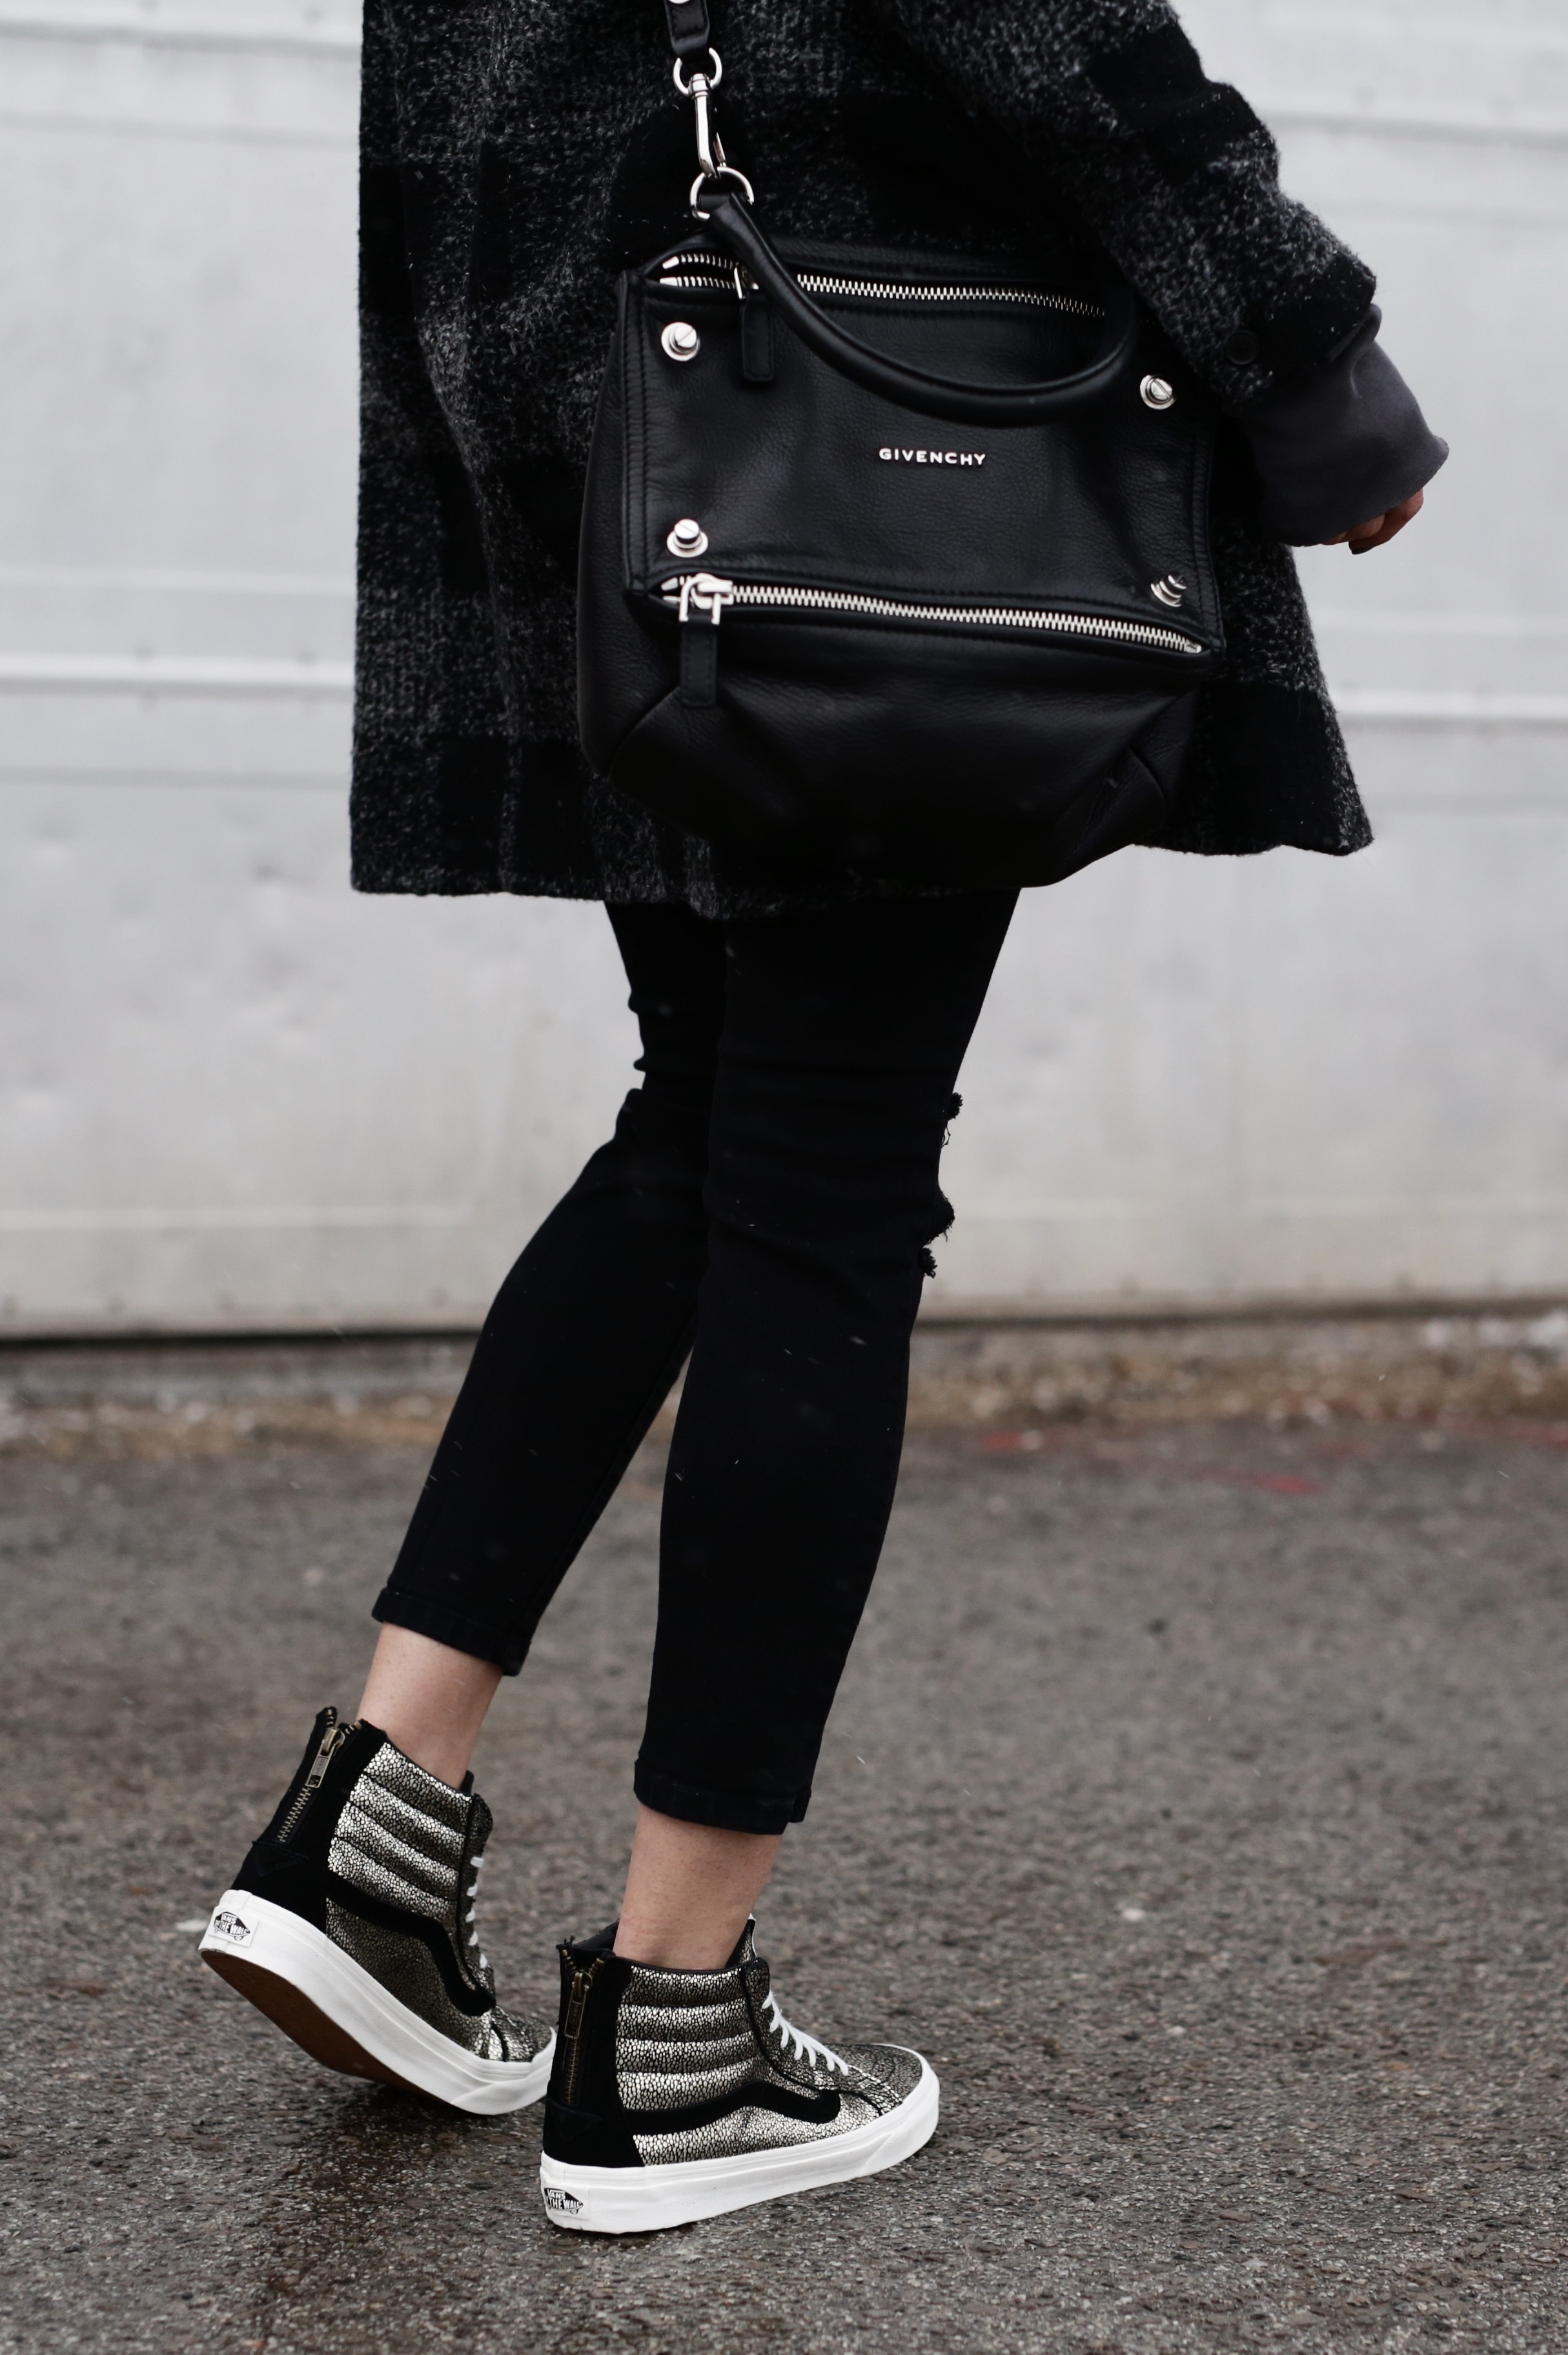 Givenchy Pandora bag, gold Vans SK8-HI sneakers, hoodie, casual street style -10 Statement Sneakers To Buy Now, glitter, metallic, neon, white canvas_7335.JPG